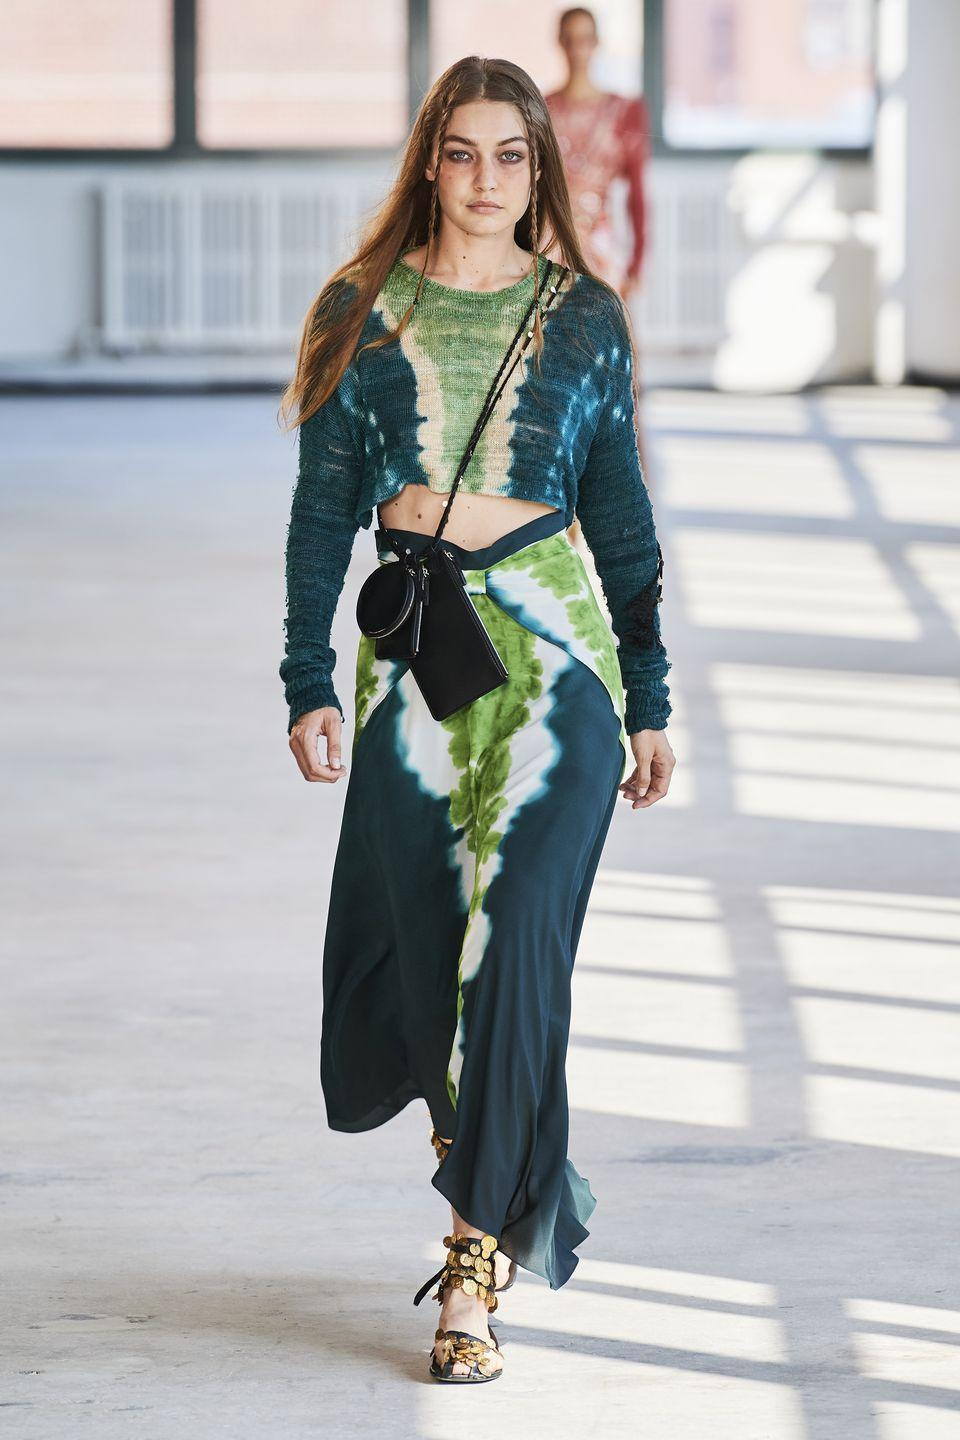 <p>Retuning to the New York Fashion Week schedule after a few seasons off (the designer showed in Paris for a while before the pandemic took hold), Joseph Altuzarra brought a touch of escapism to the catwalk with tie-dye prints, relaxed separates and dresses that are perfect for travelling the world. </p>